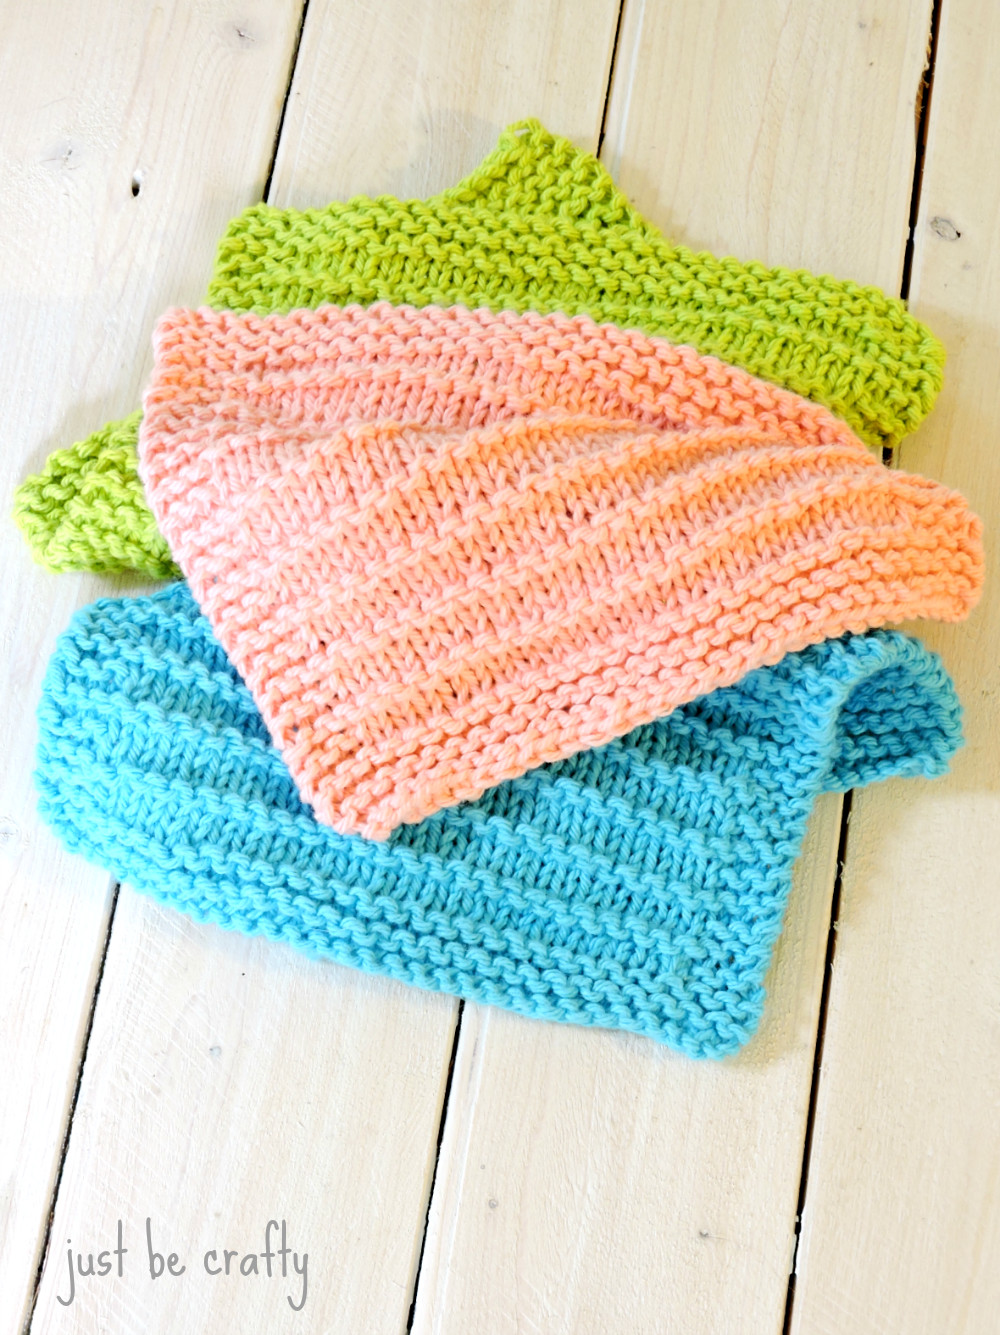 Beautiful Farmhouse Kitchen Knitted Dishcloths Just Be Crafty Knitting Ideas Of Superb 43 Images Knitting Ideas